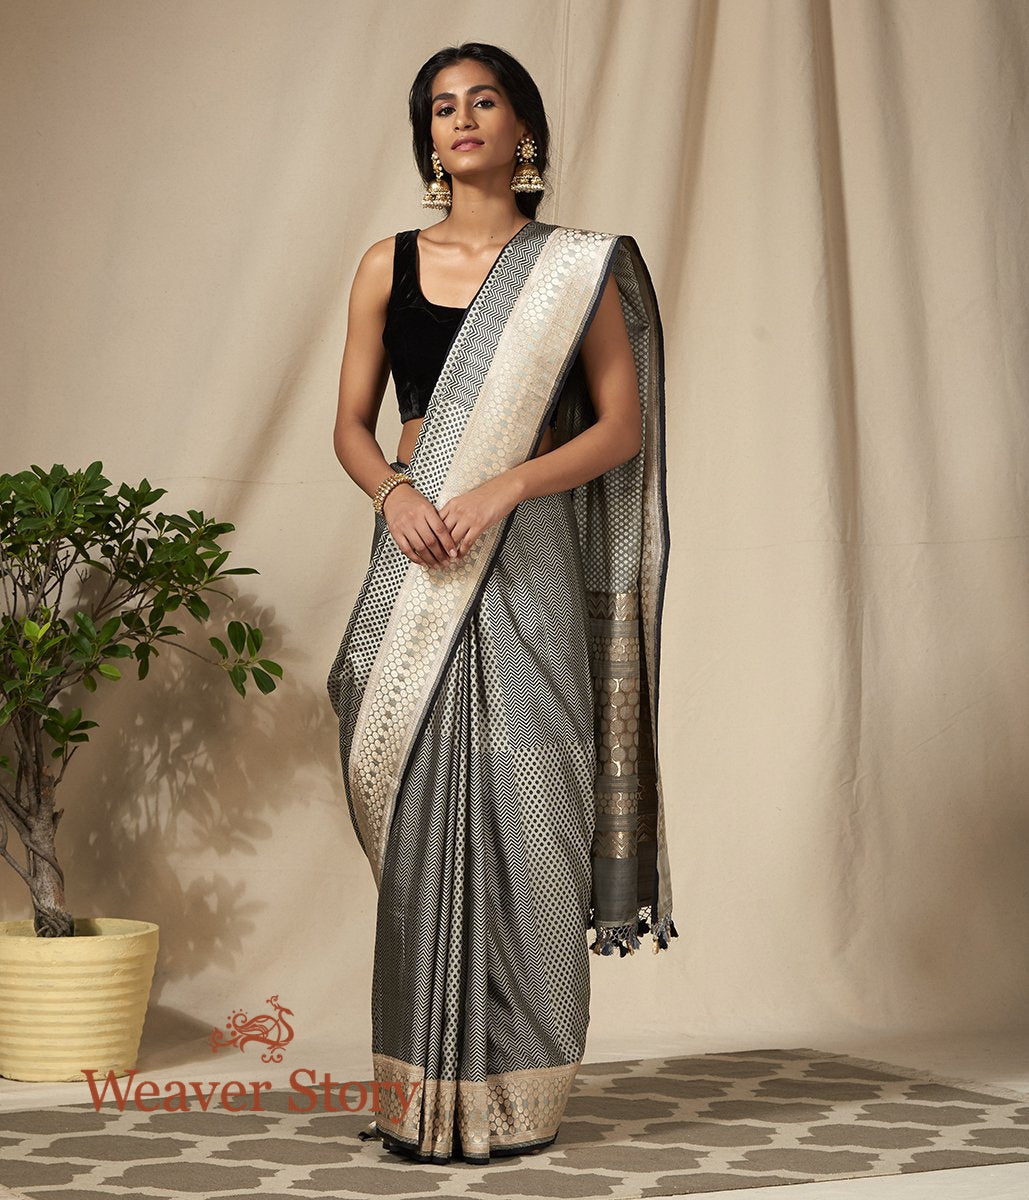 Handwoven Black and Offwhite Banarasi Tanchoi Saree with Woven Zari Border